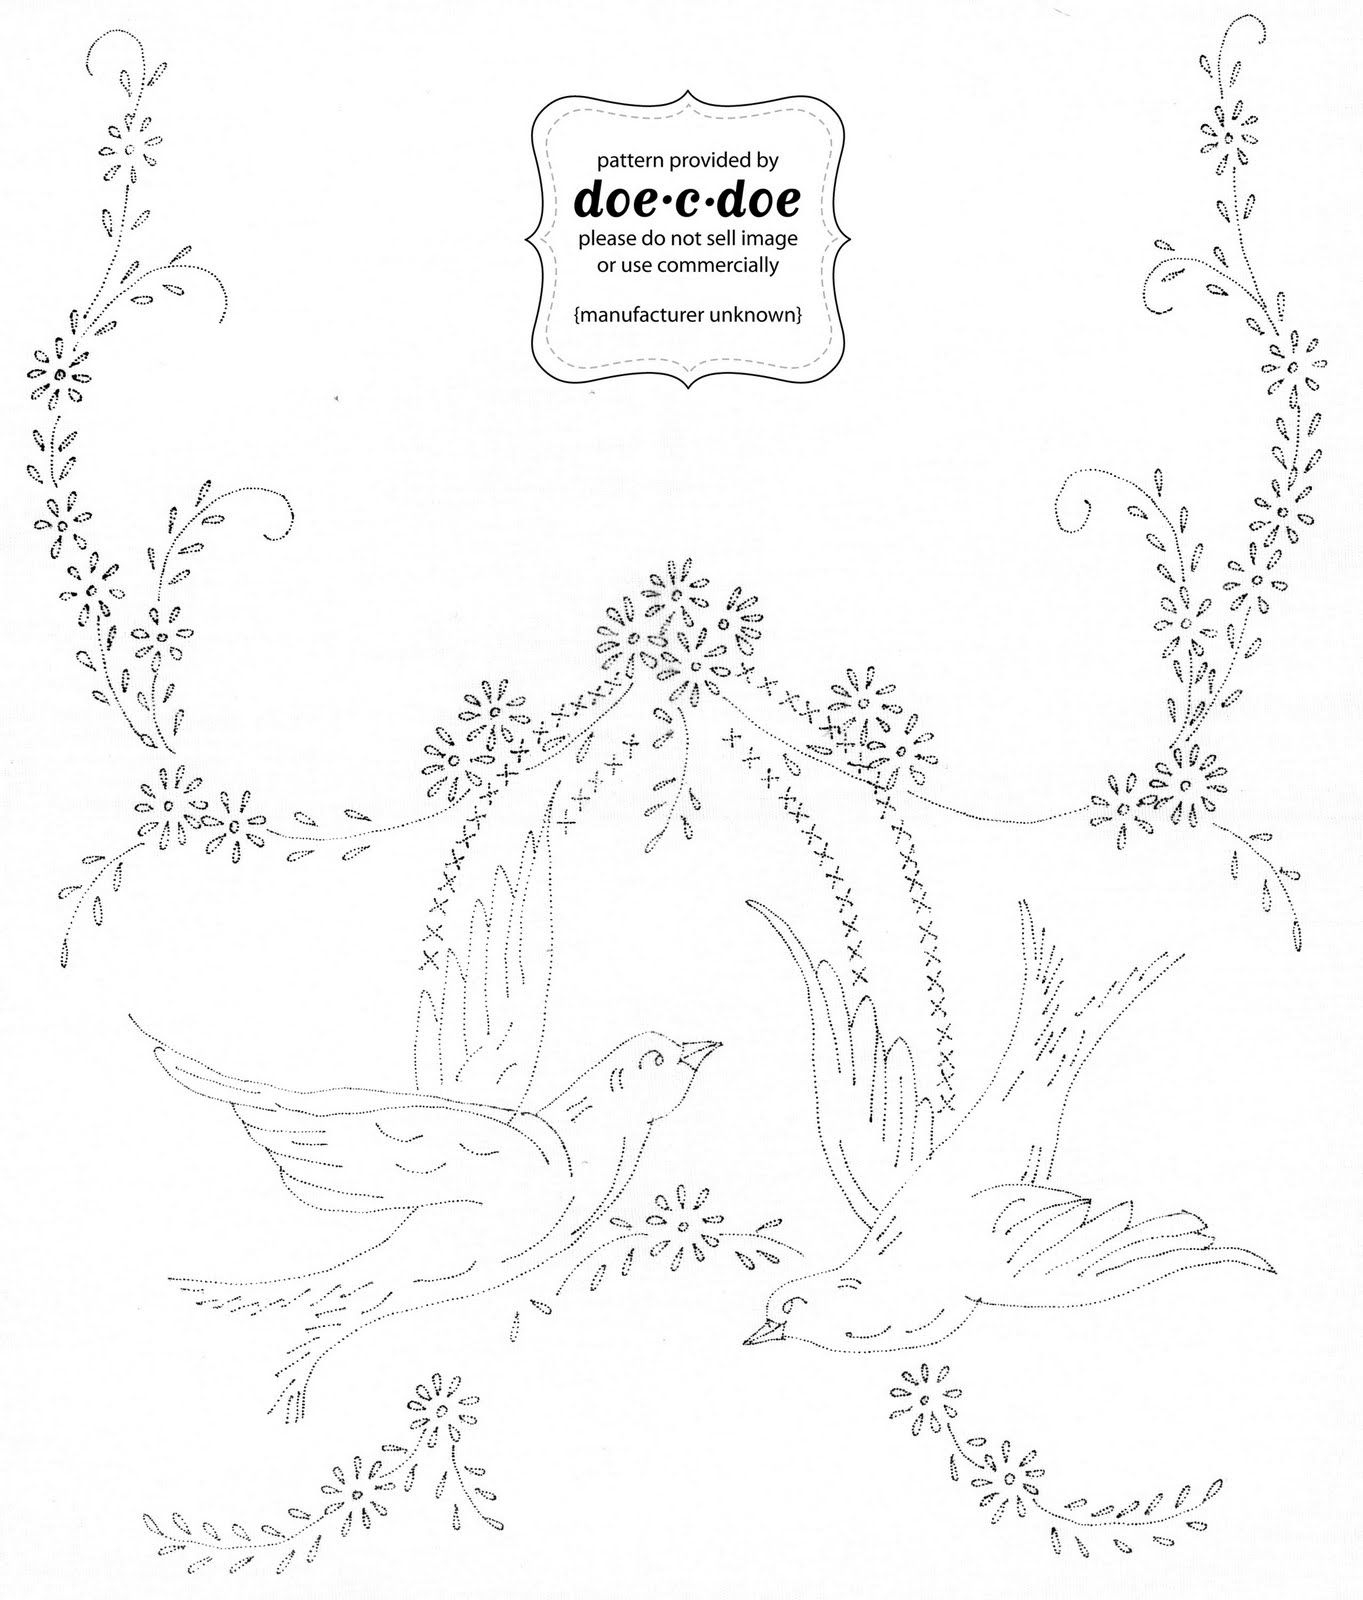 Free Printable Embroidery Patterns | Thursday, October 21, 2010 - Free Printable Embroidery Patterns